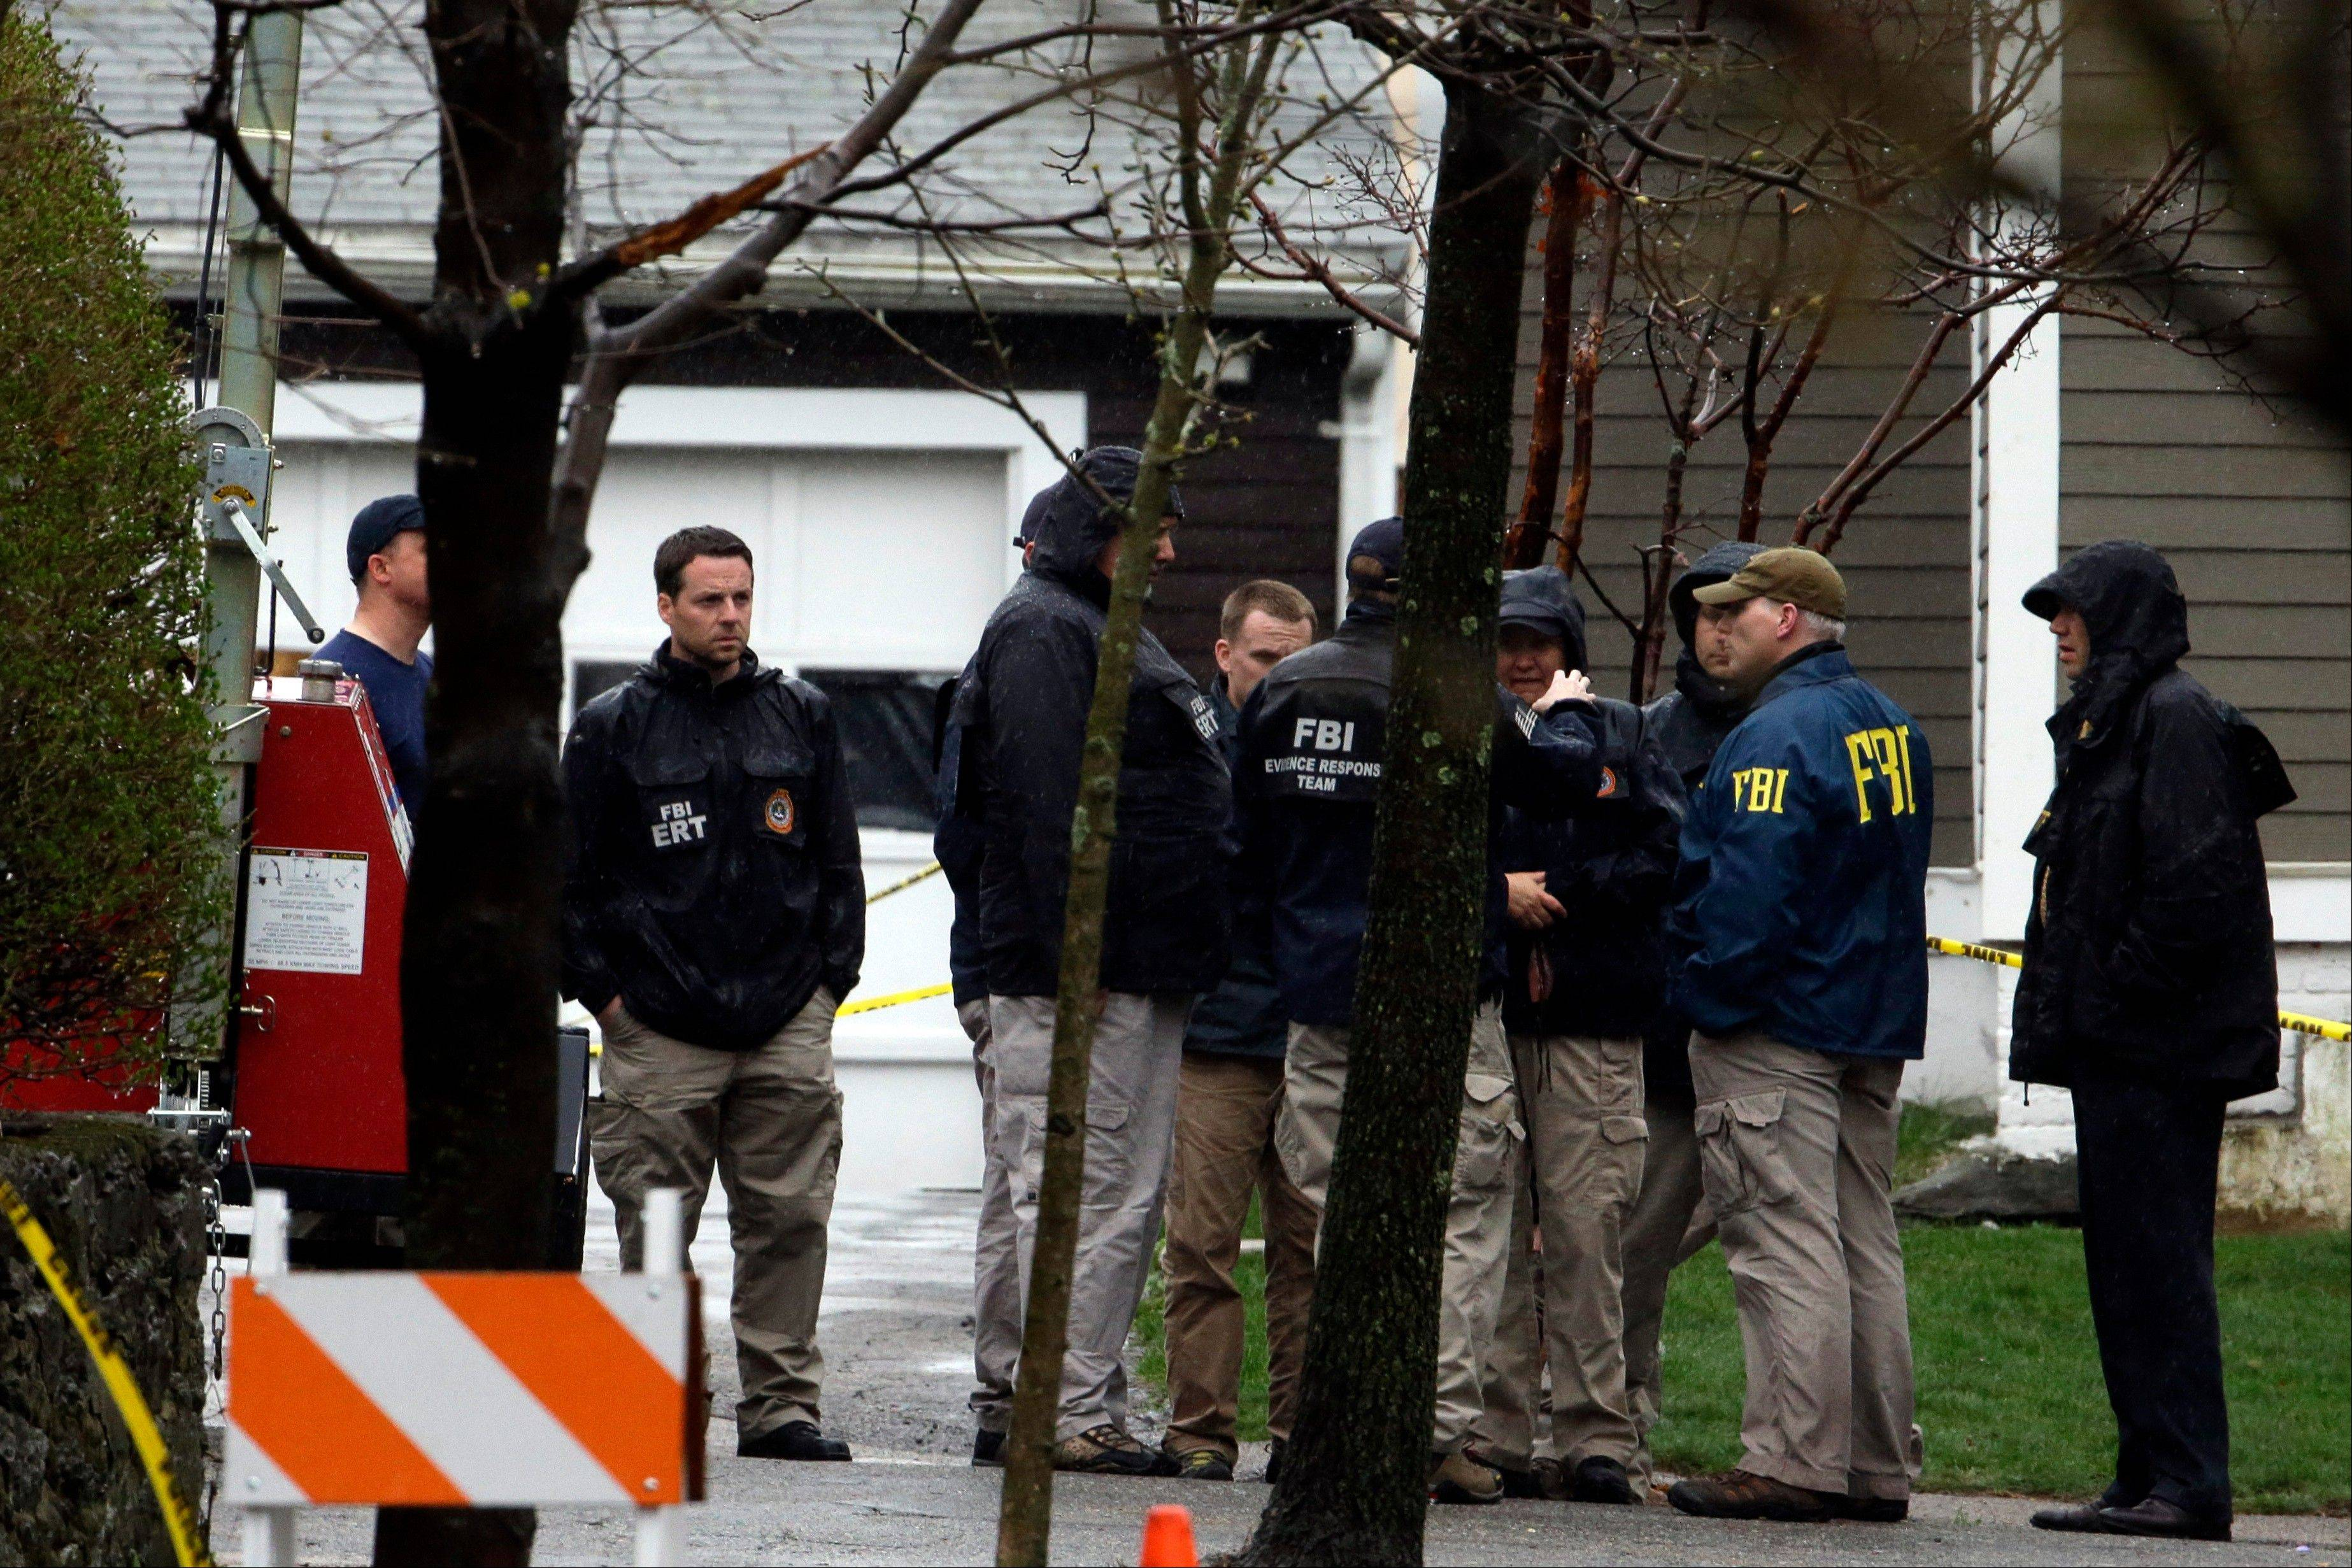 Investigators work near the location where the previous night a suspect in the Boston Marathon bombings was arrested, Saturday, April 20, 2013, in Watertown, Mass. Police captured Dzhokhar Tsarnaev, 19, the surviving Boston Marathon bombing suspect, in a backyard boat after a wild car chase and gun battle that left his older brother dead.